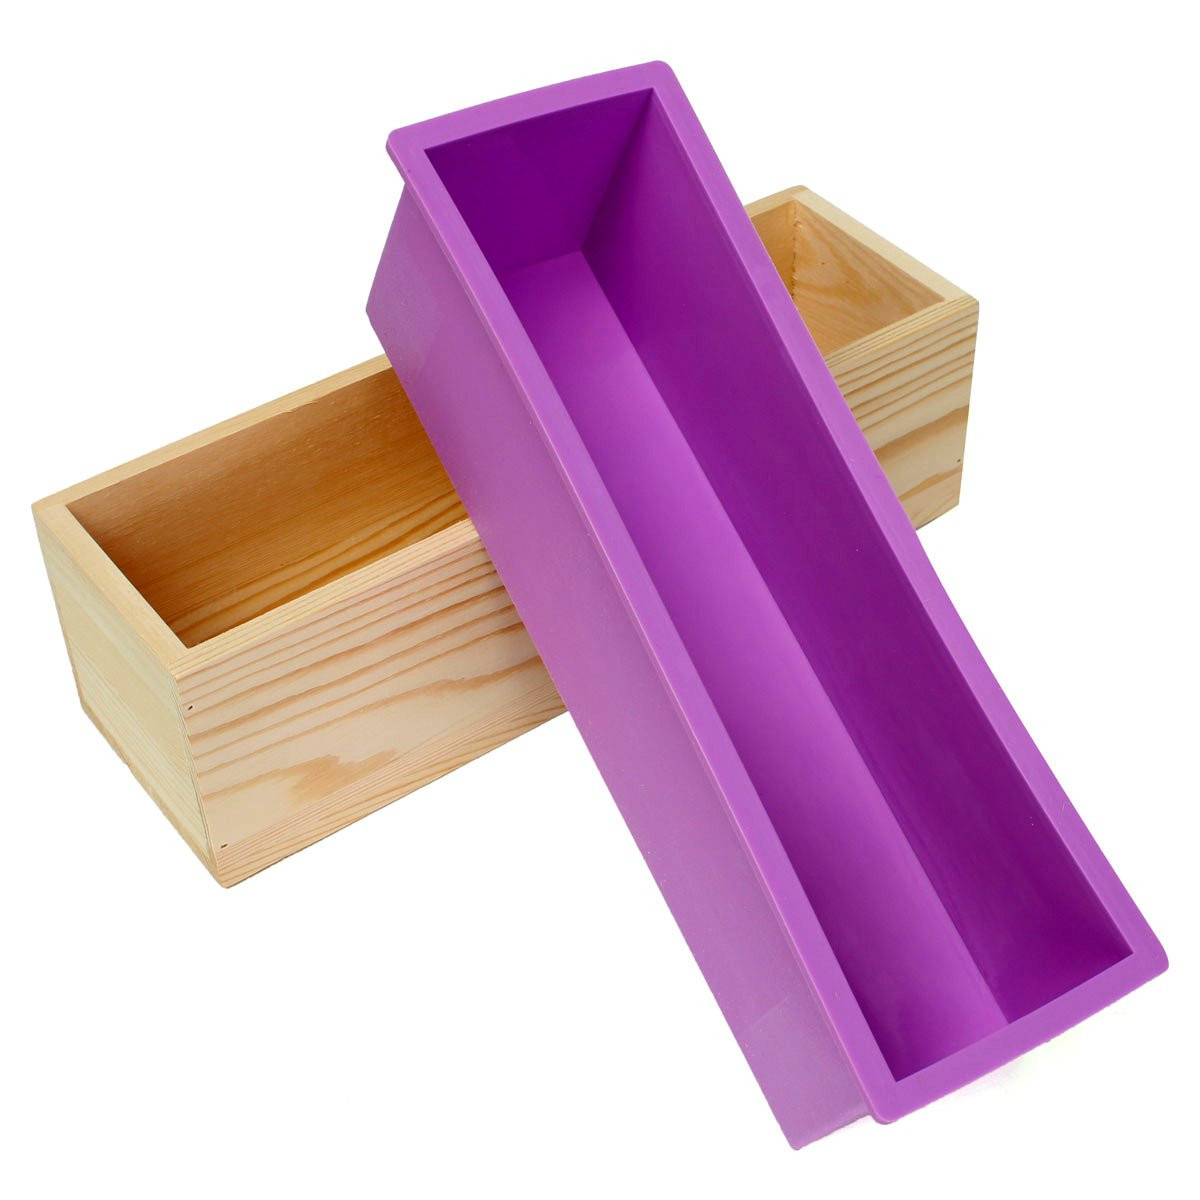 """1200g Loaf Silicone Mold With Wooden Box for Soap Making Biscuit DIY Cake Baking Tools 11.02x3.54x3.23""""... by"""